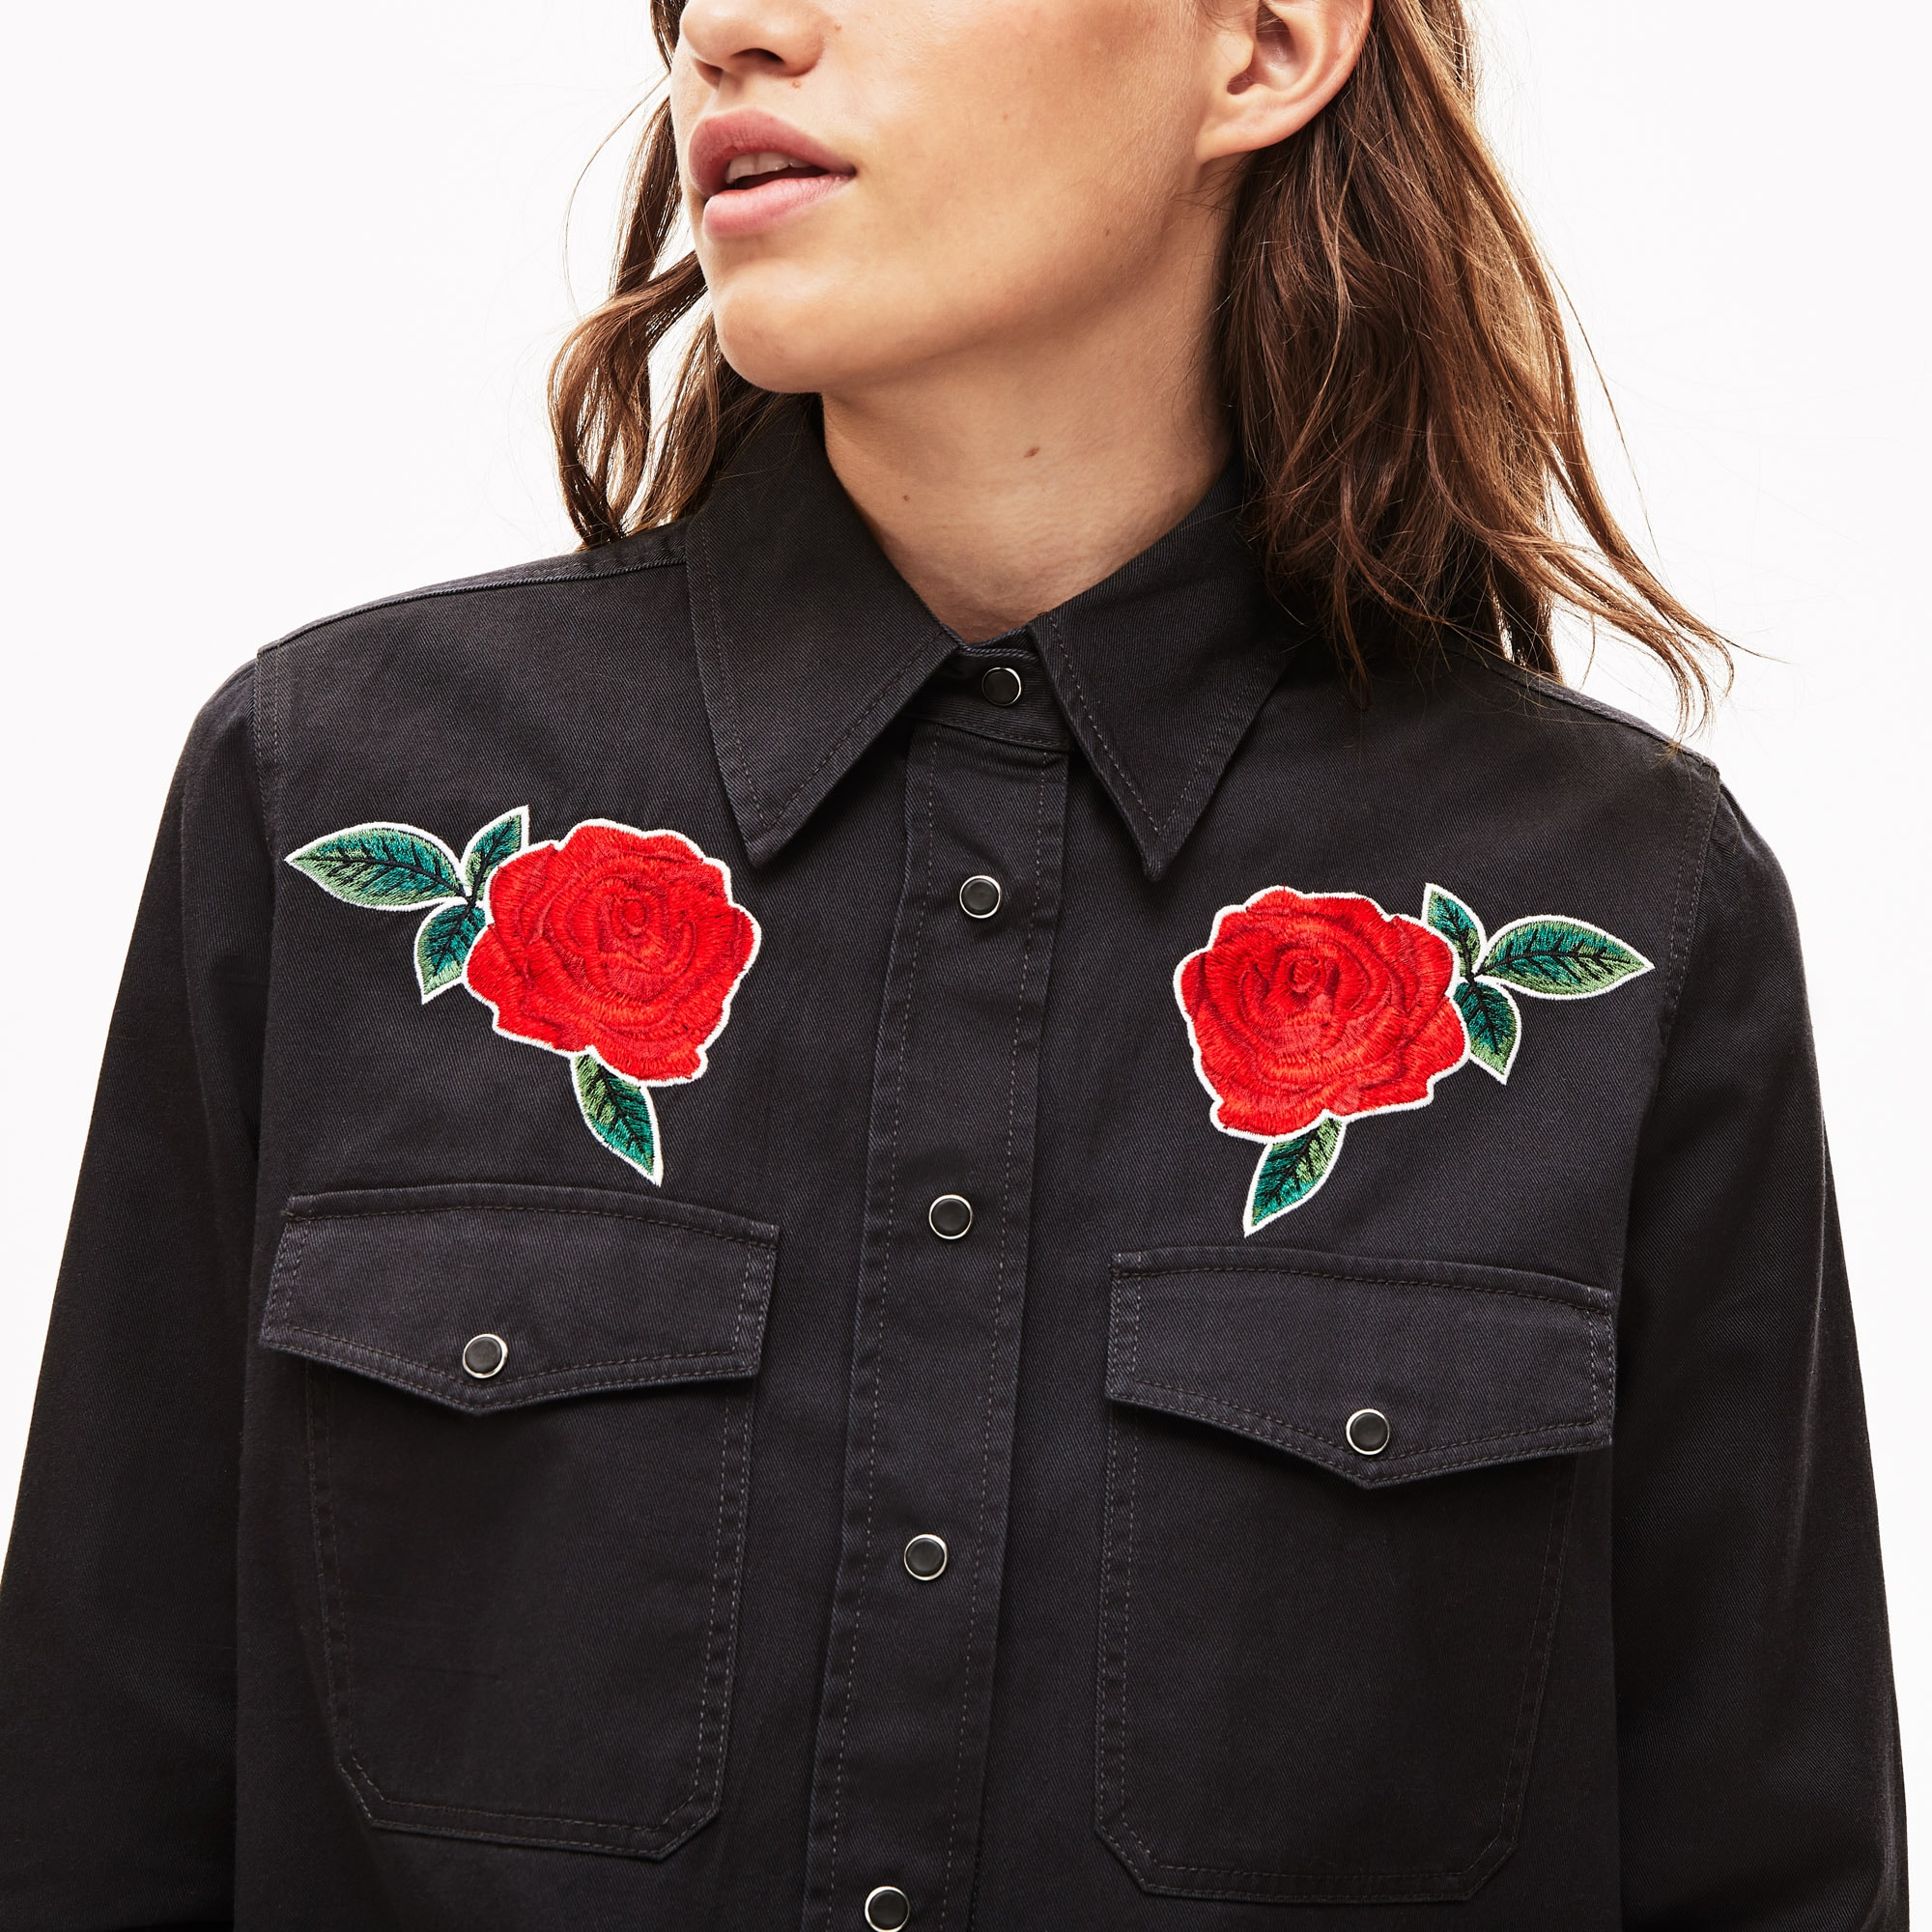 Women's LIVE Rose-Embroidered Cotton Shirt